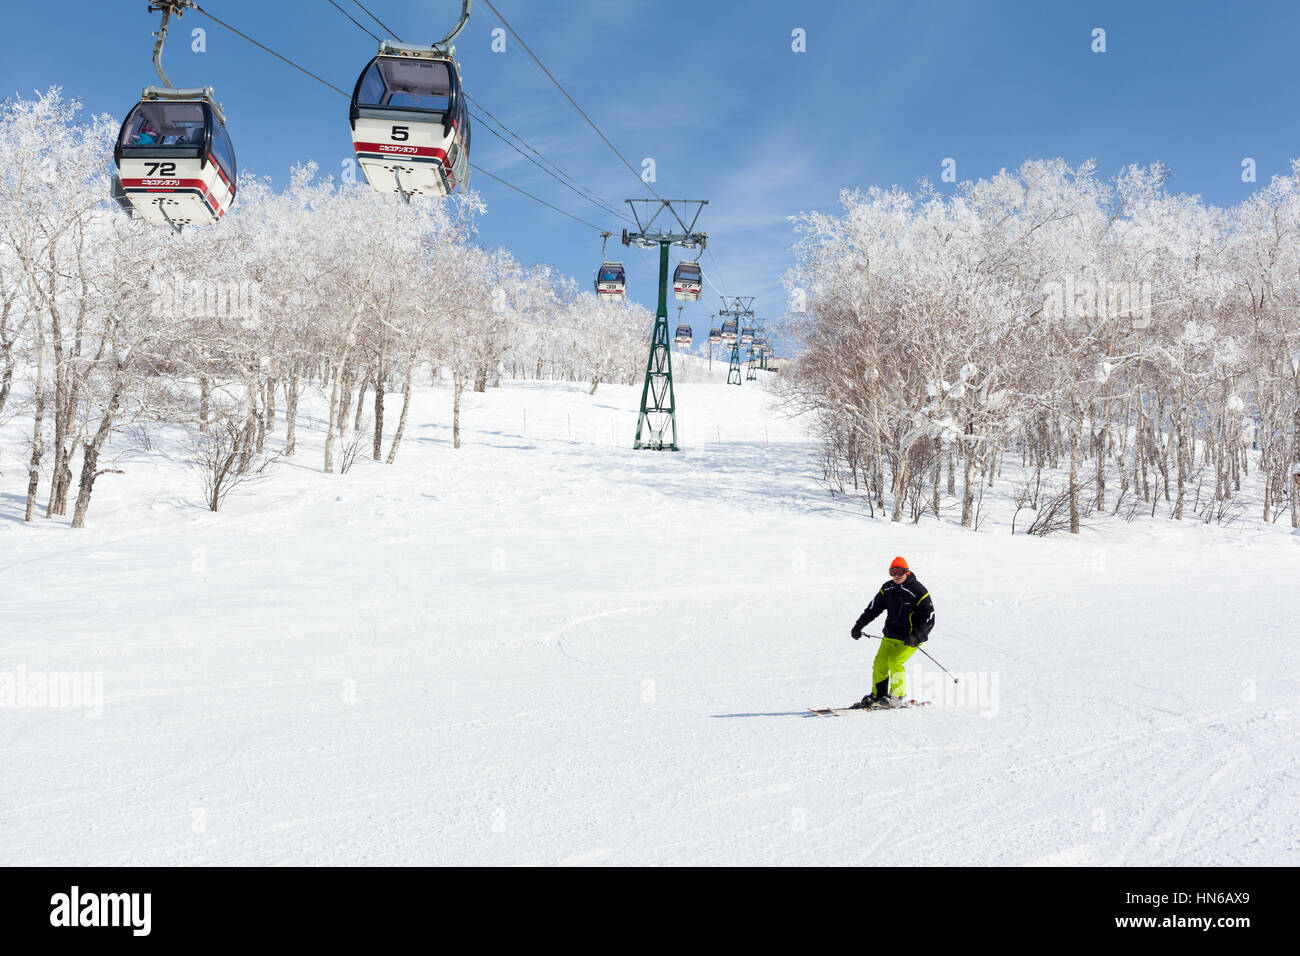 NISEKO, JAPAN - MARCH 9 : A man skis past a gondola lift in the Niseko Annupuri ski resort on 9th March 2012. Niseko - Stock Image